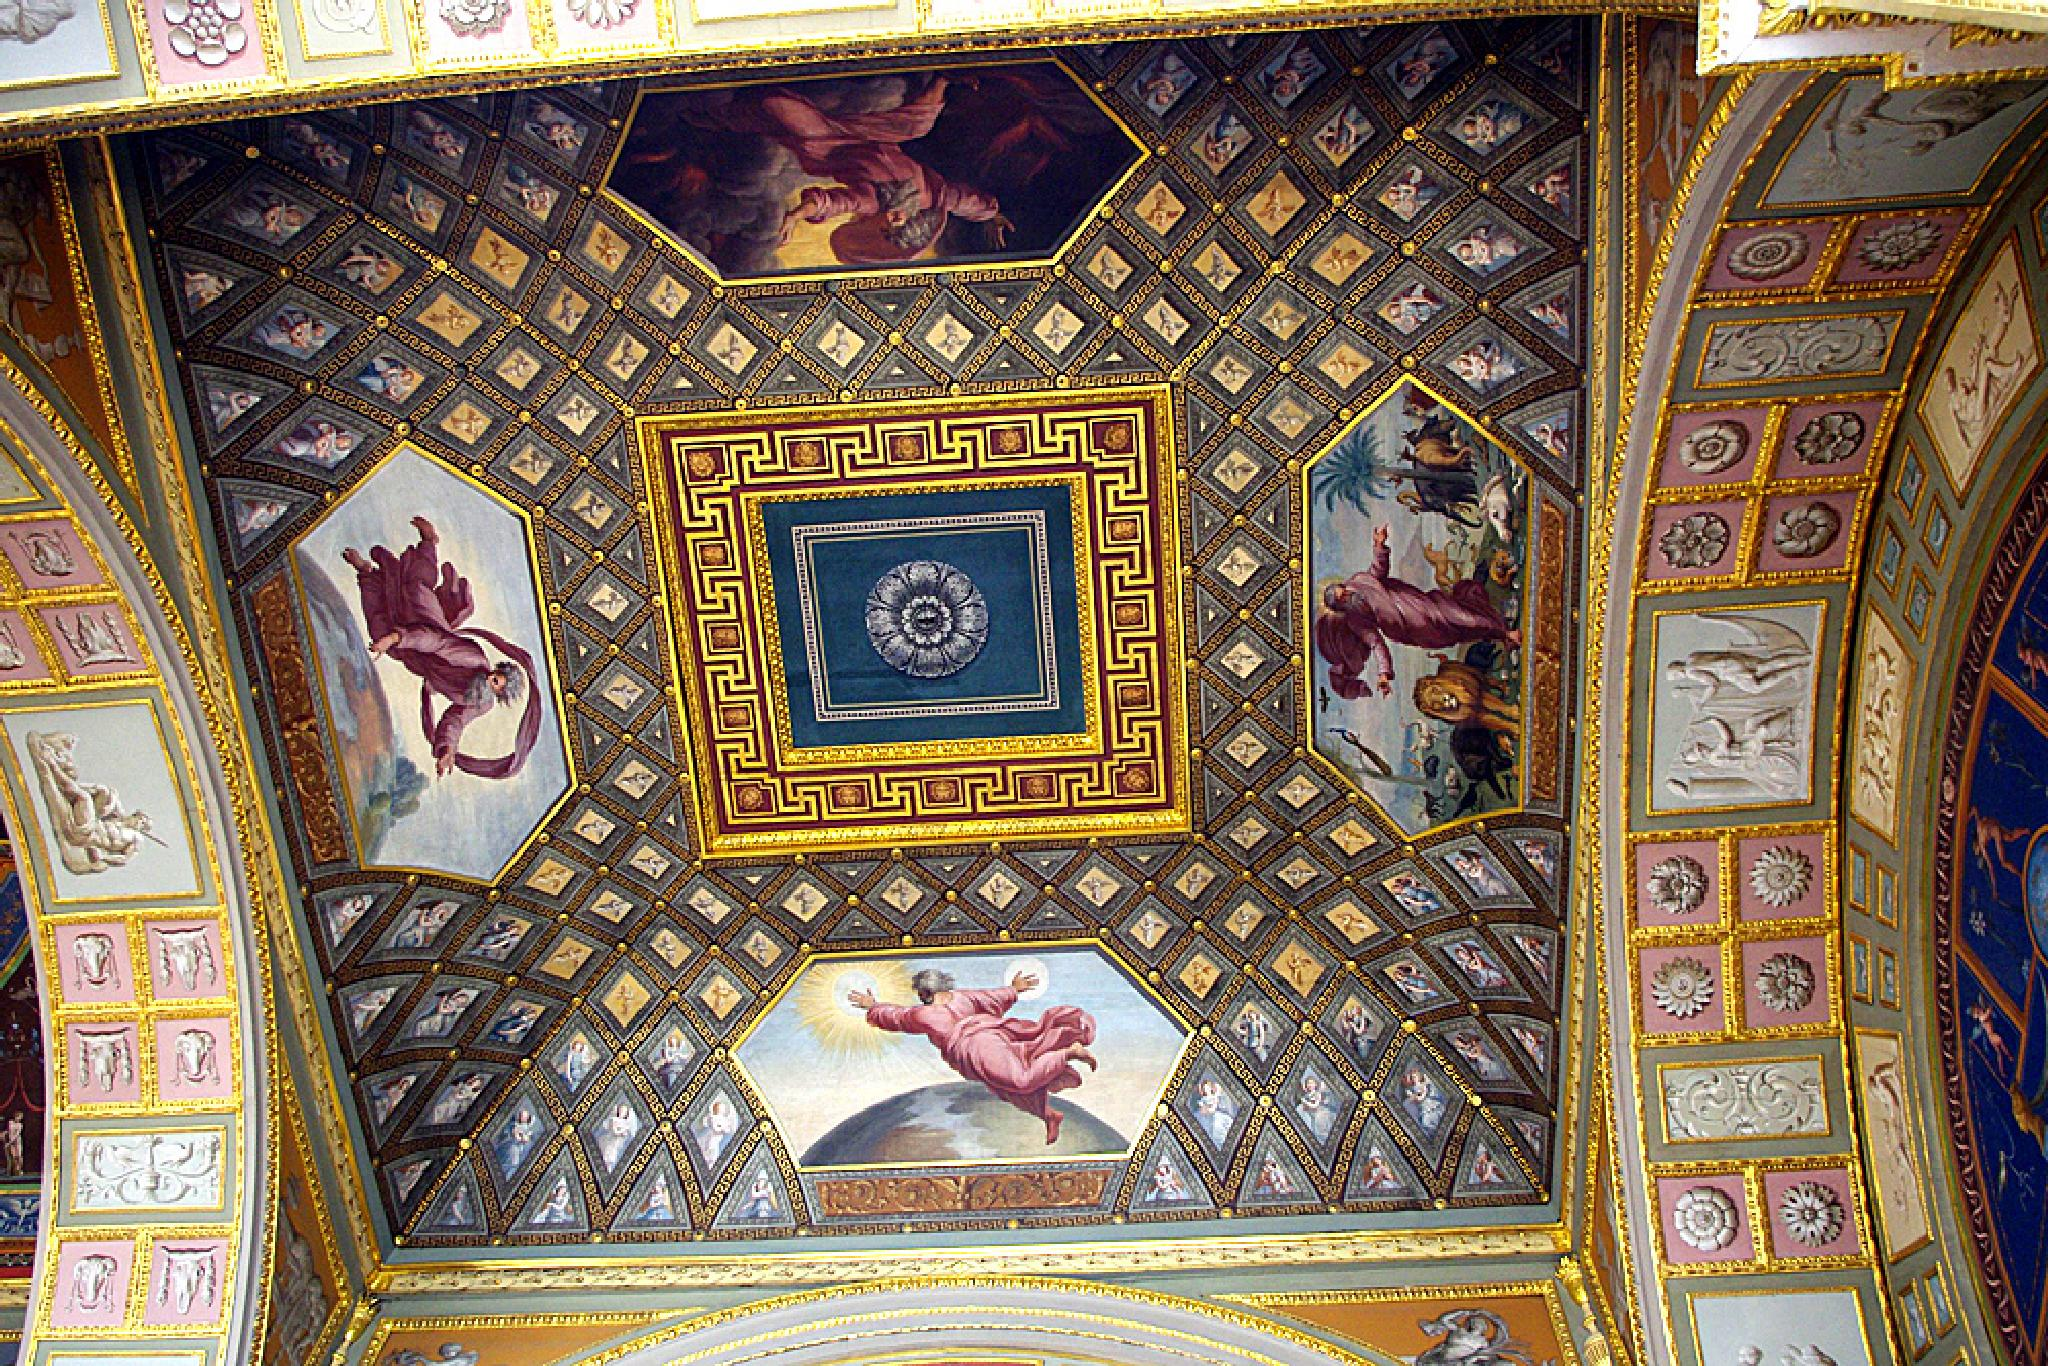 St Petersburg Winter Palace-Hermitage Museum 18-20 July 2015 by Owen Smithers